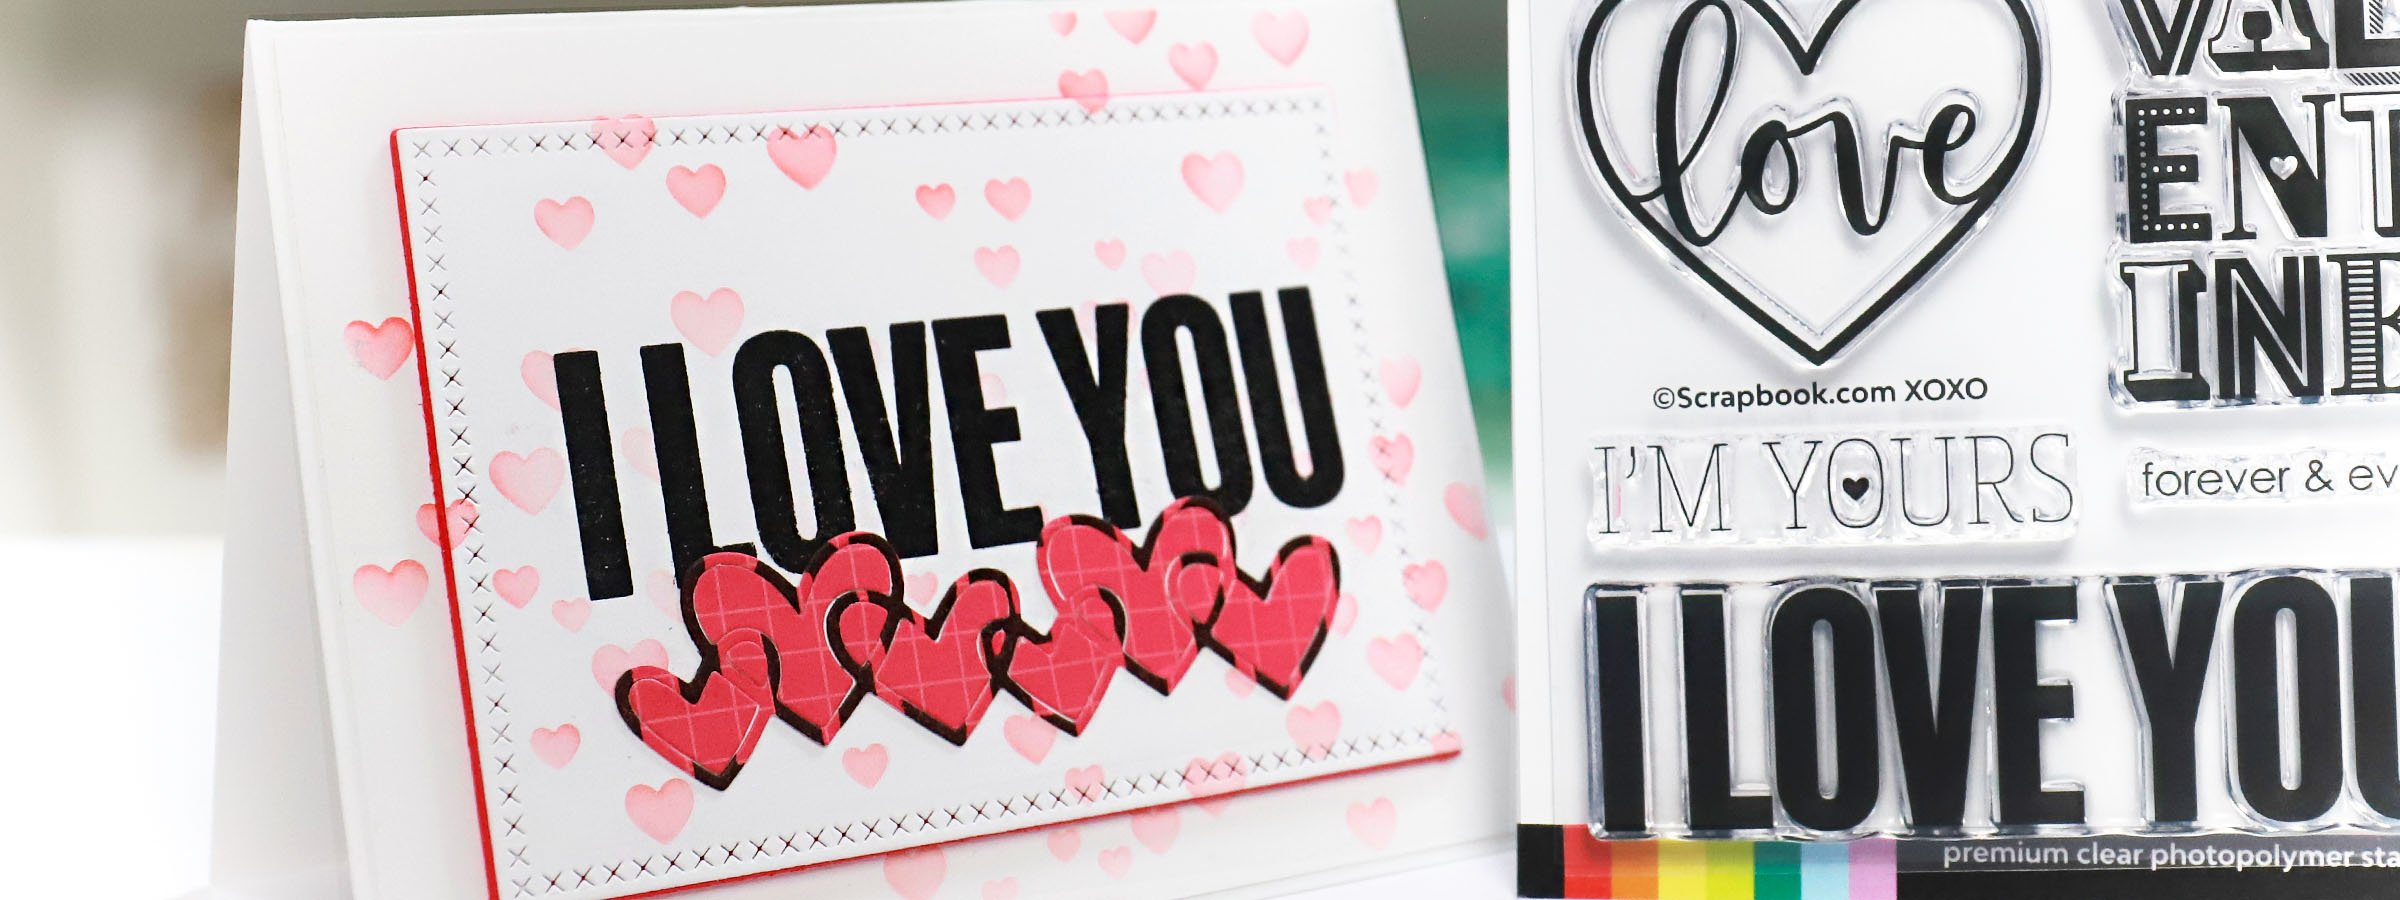 XOXO Envelope with Love Note Heart Card pack of 4